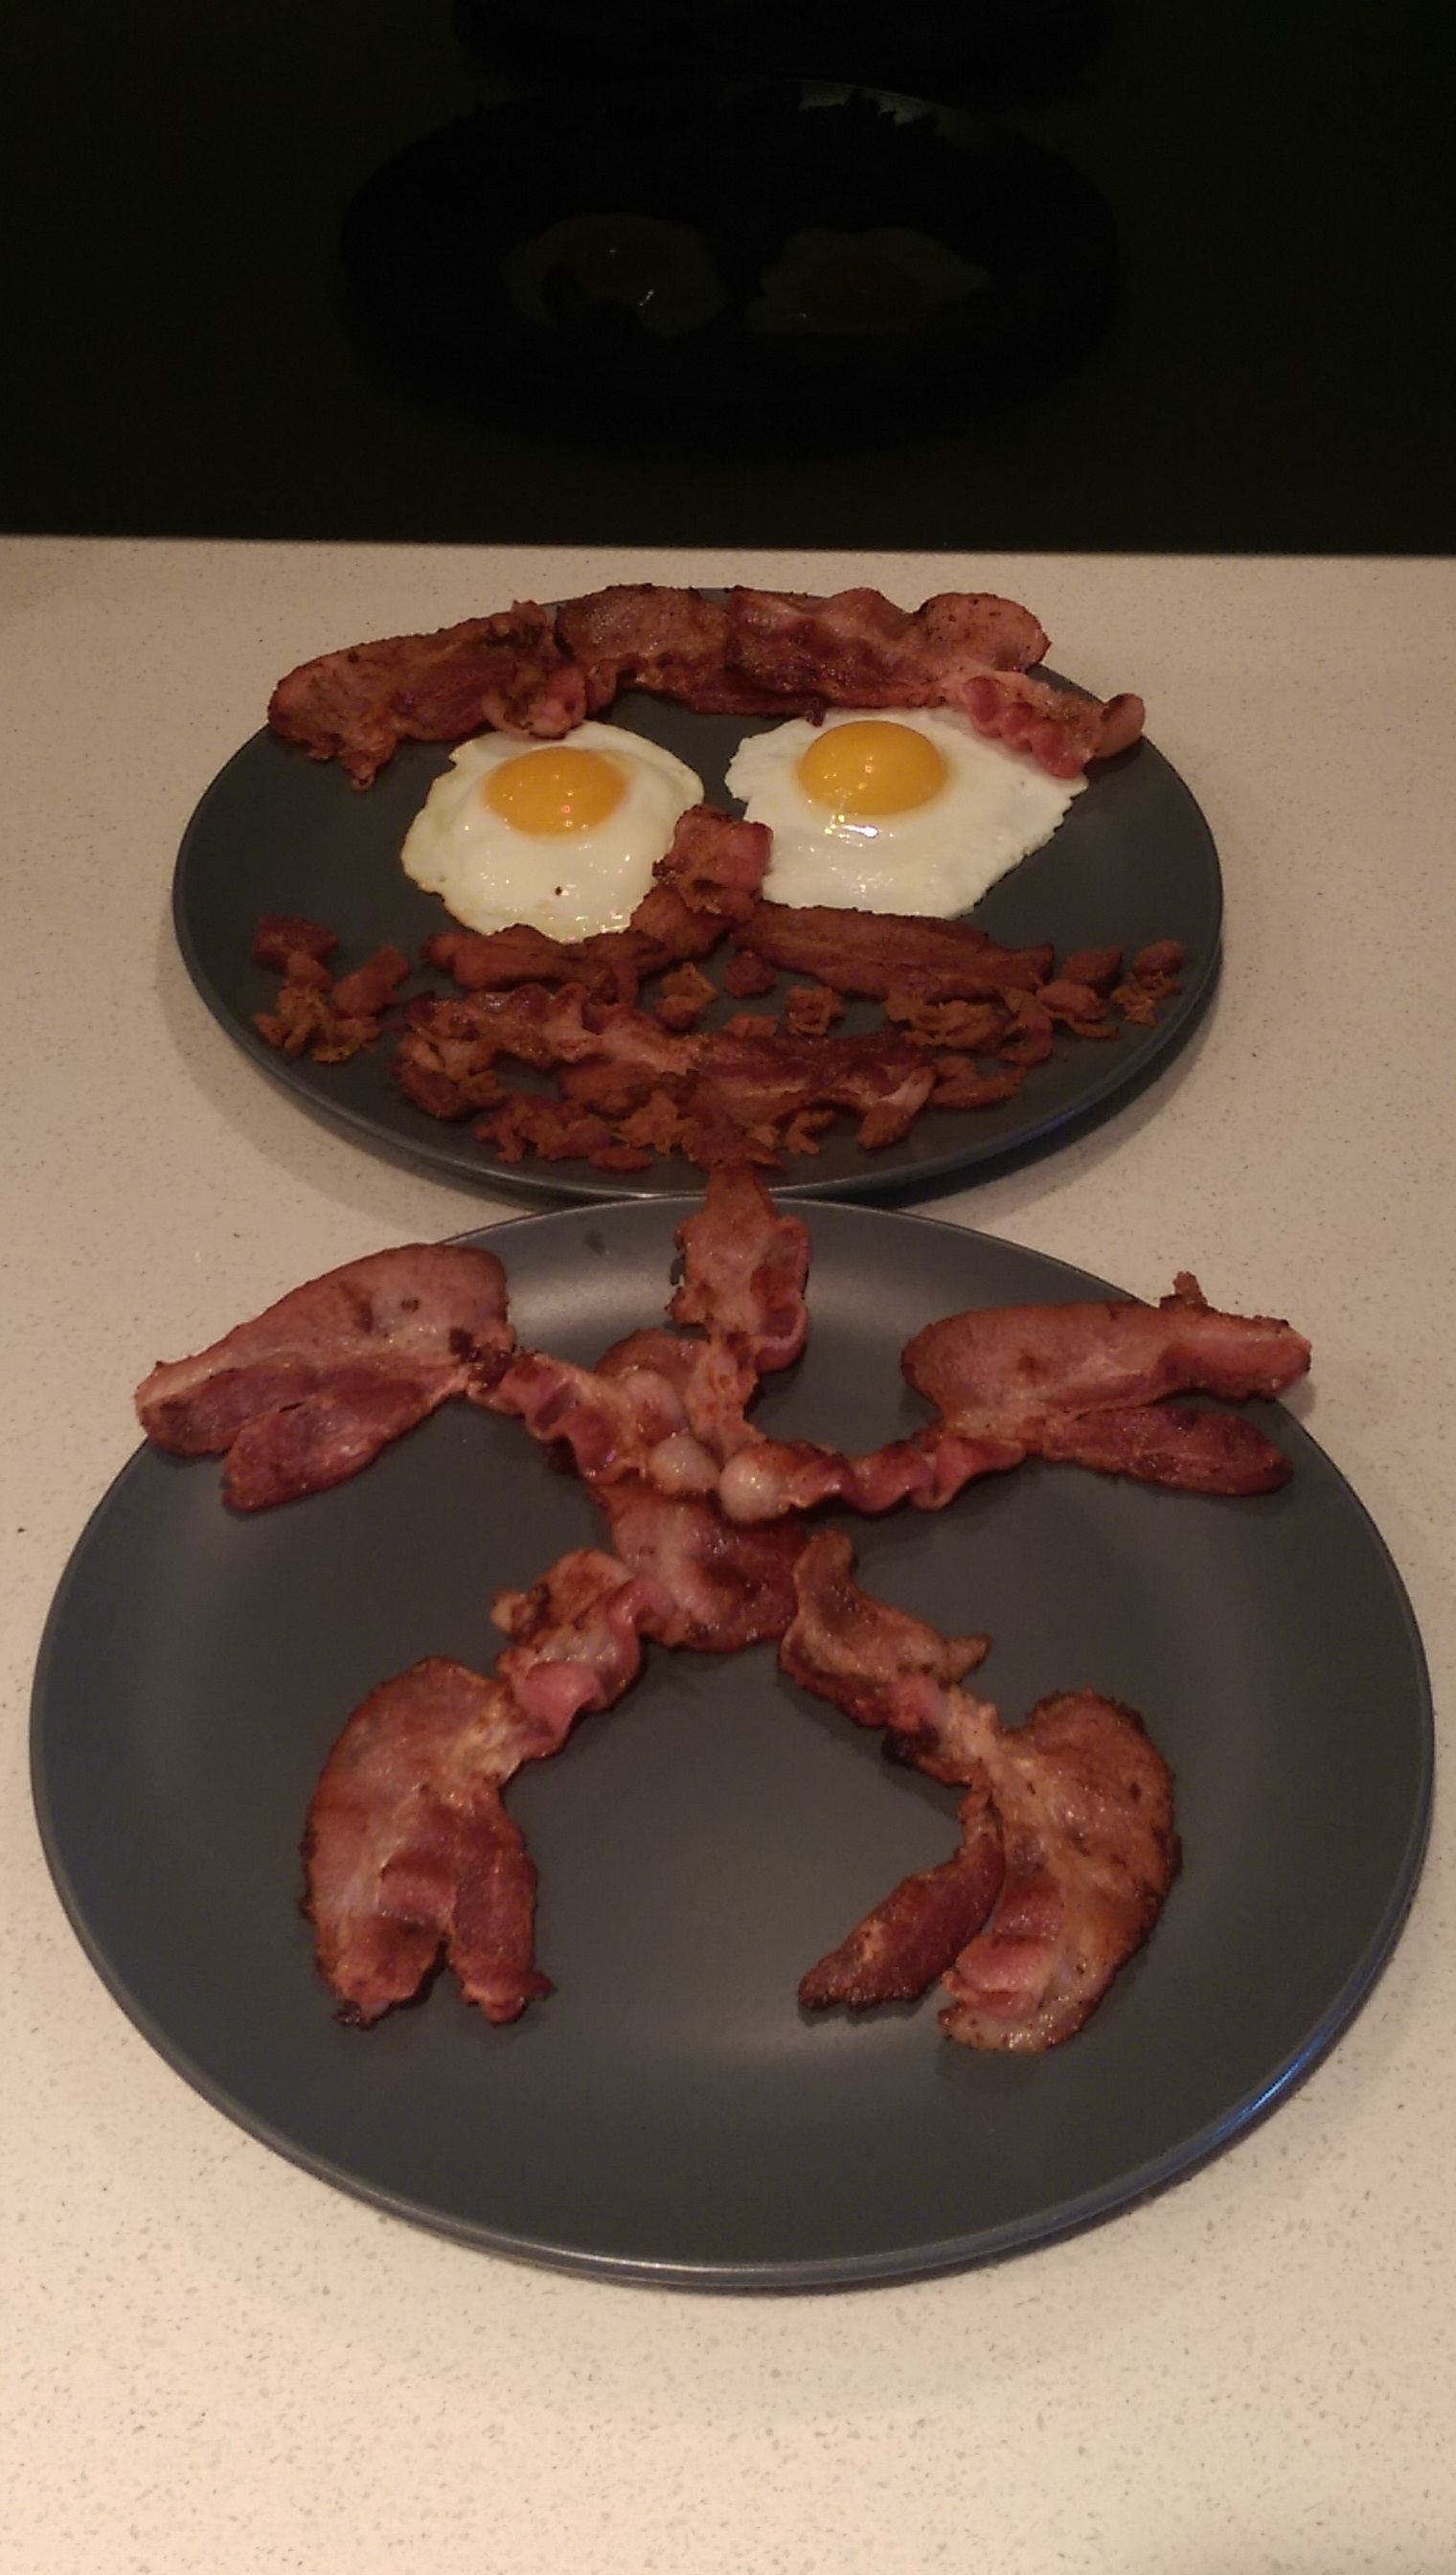 Smiley-Face-Breakfast-Special